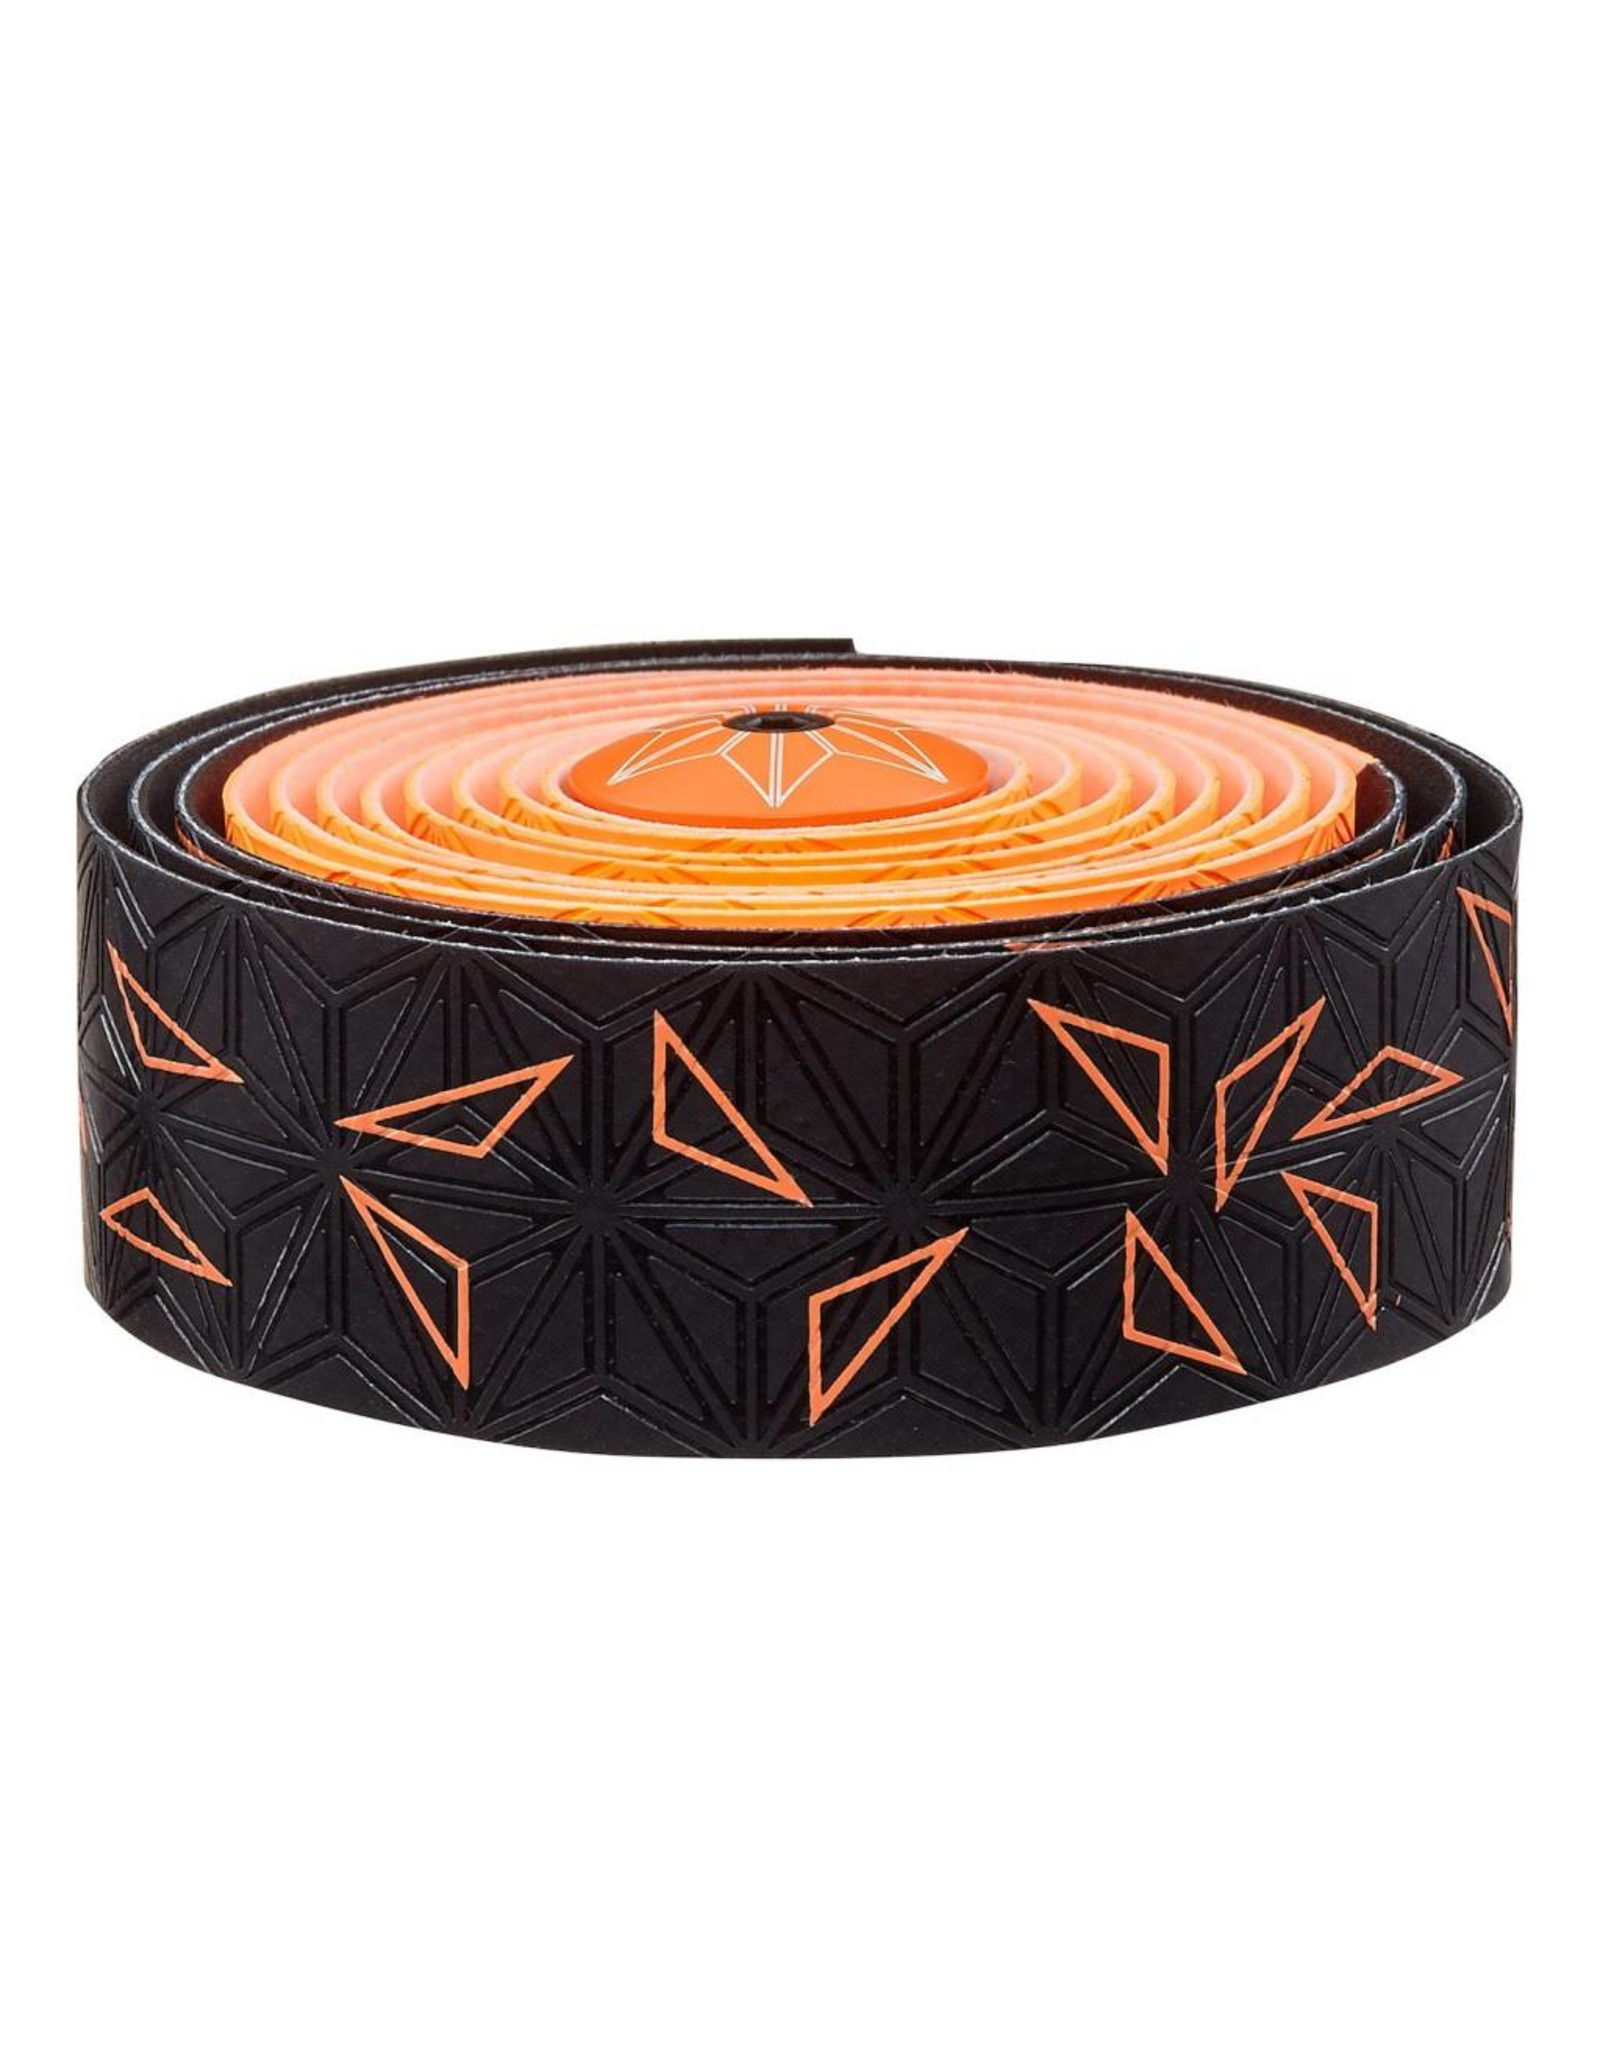 Supacaz Supacaz SSK Star Fade Neon Orange Super Sticky Kush Handlebar Tape,  /set